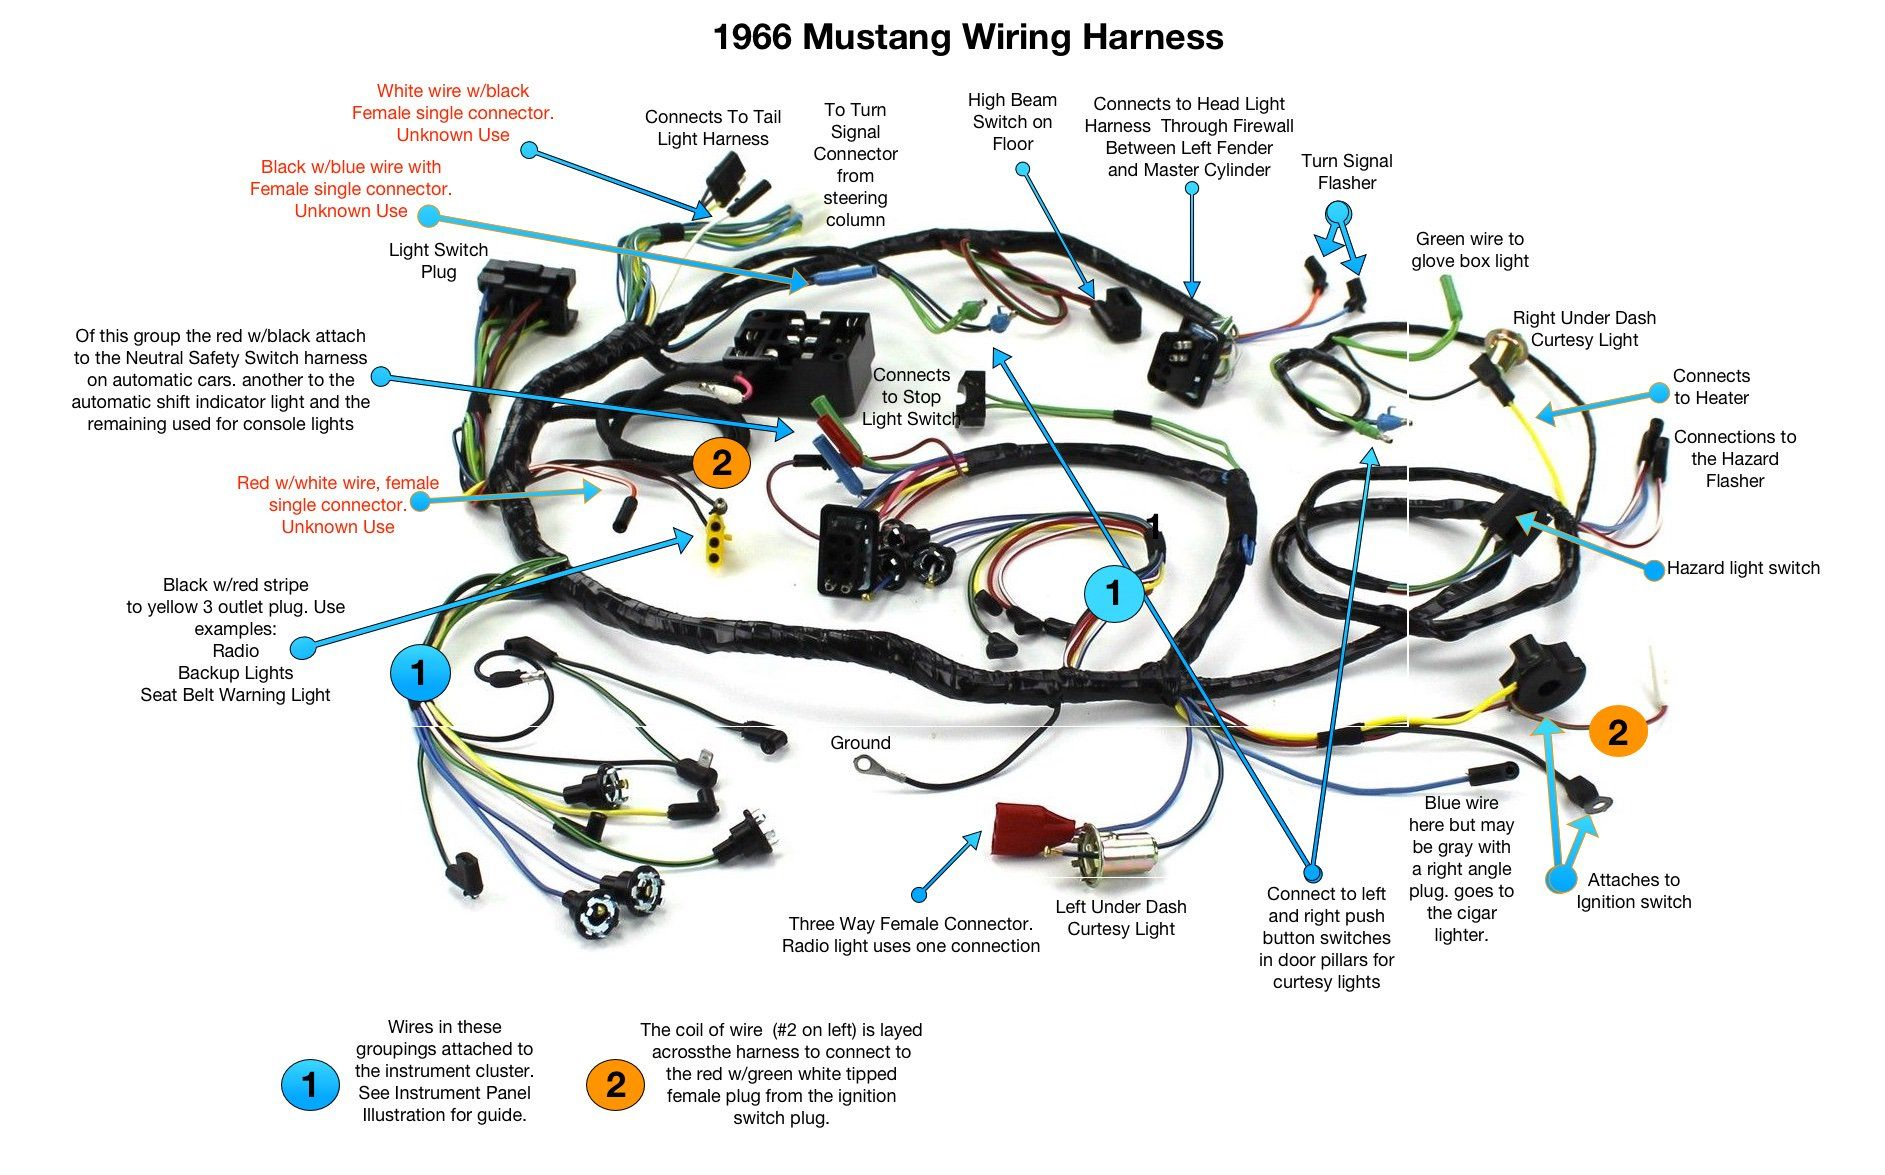 23 Automatic Engine Wiring Harness Diagram Technique Https Bacamajalah Com 23 Automatic Engine Wiring Harness Diagra Electrical Wiring Diagram Wire Mustang